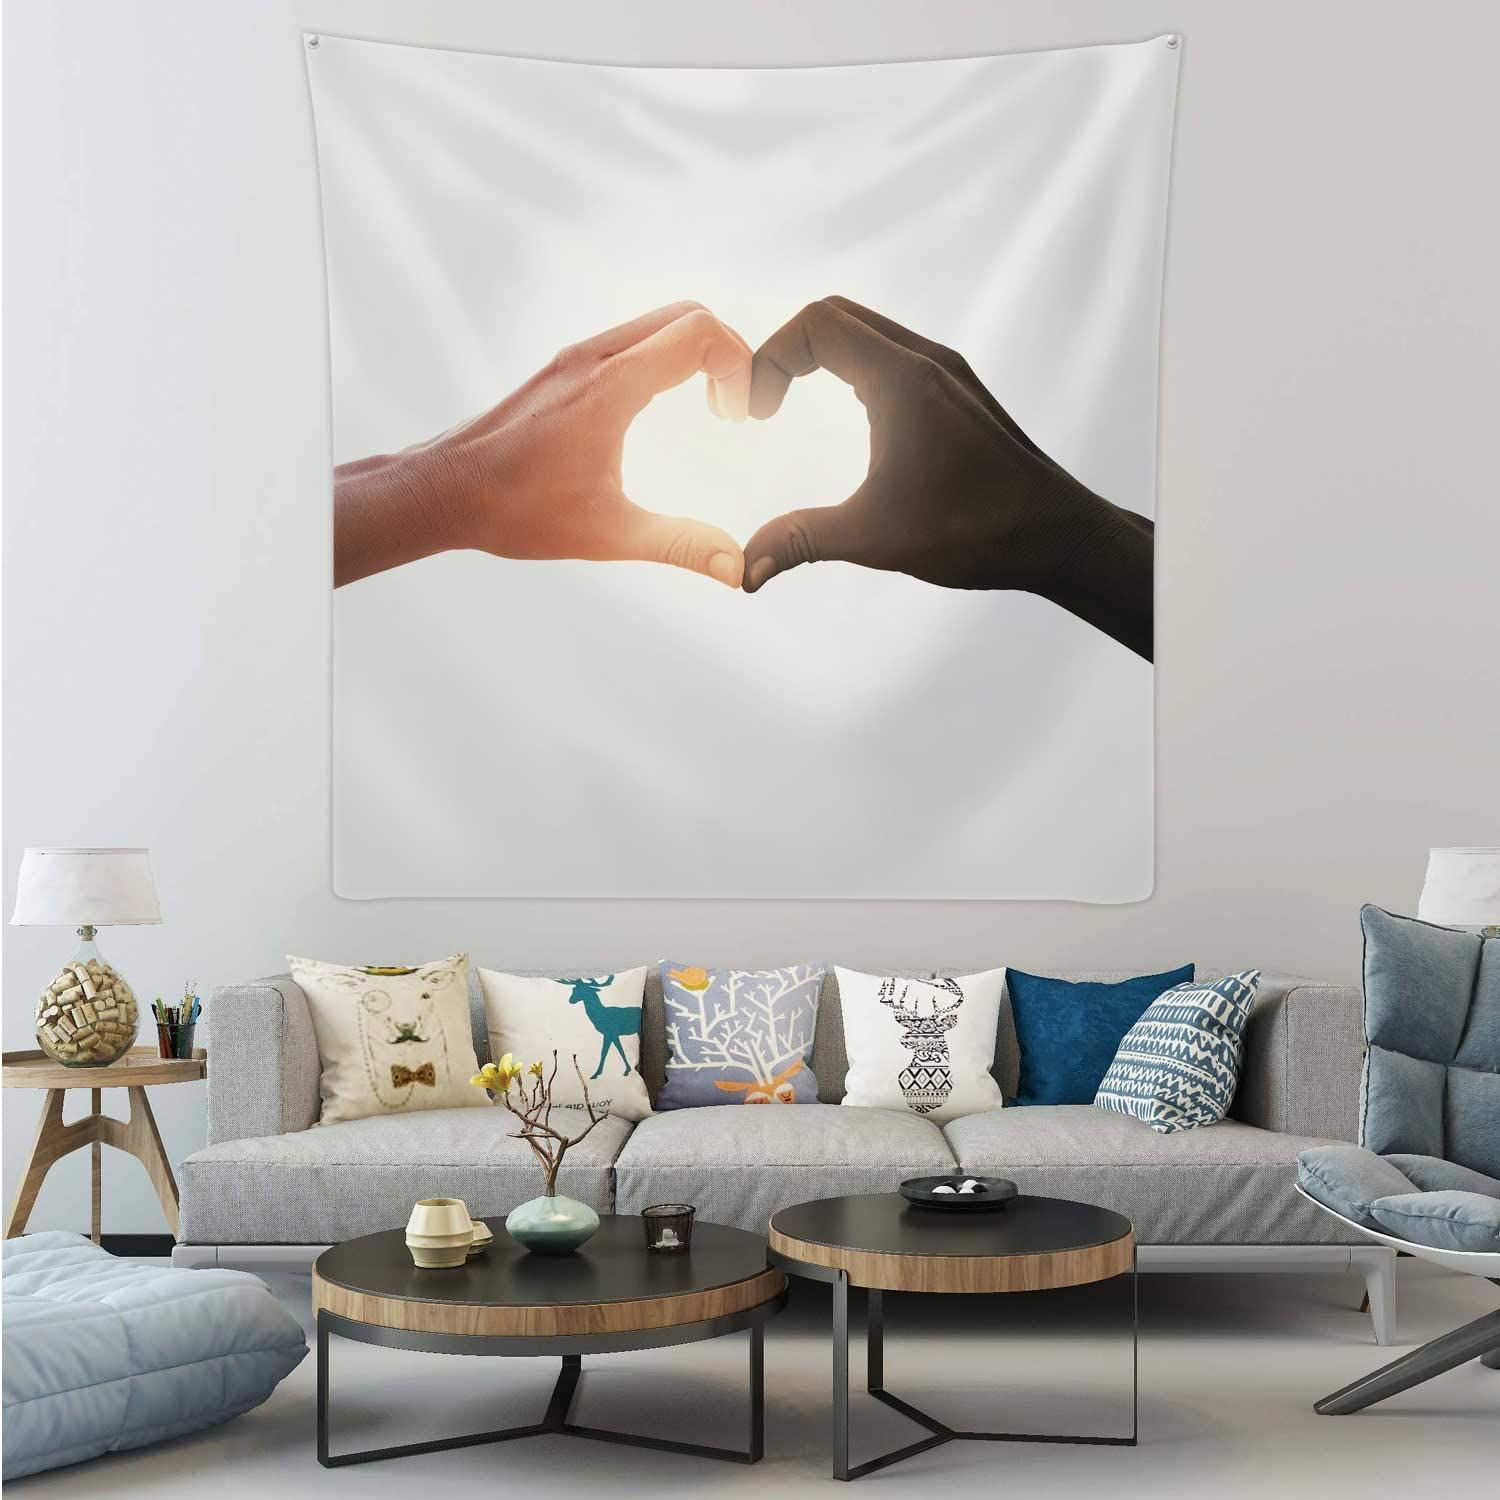 Hitecera interracial Couple in Love Heart Shape Hand Gesture,Tapestry Wall Hanging Wall Art for Living Room Dorm Decor 51.1X51.1in